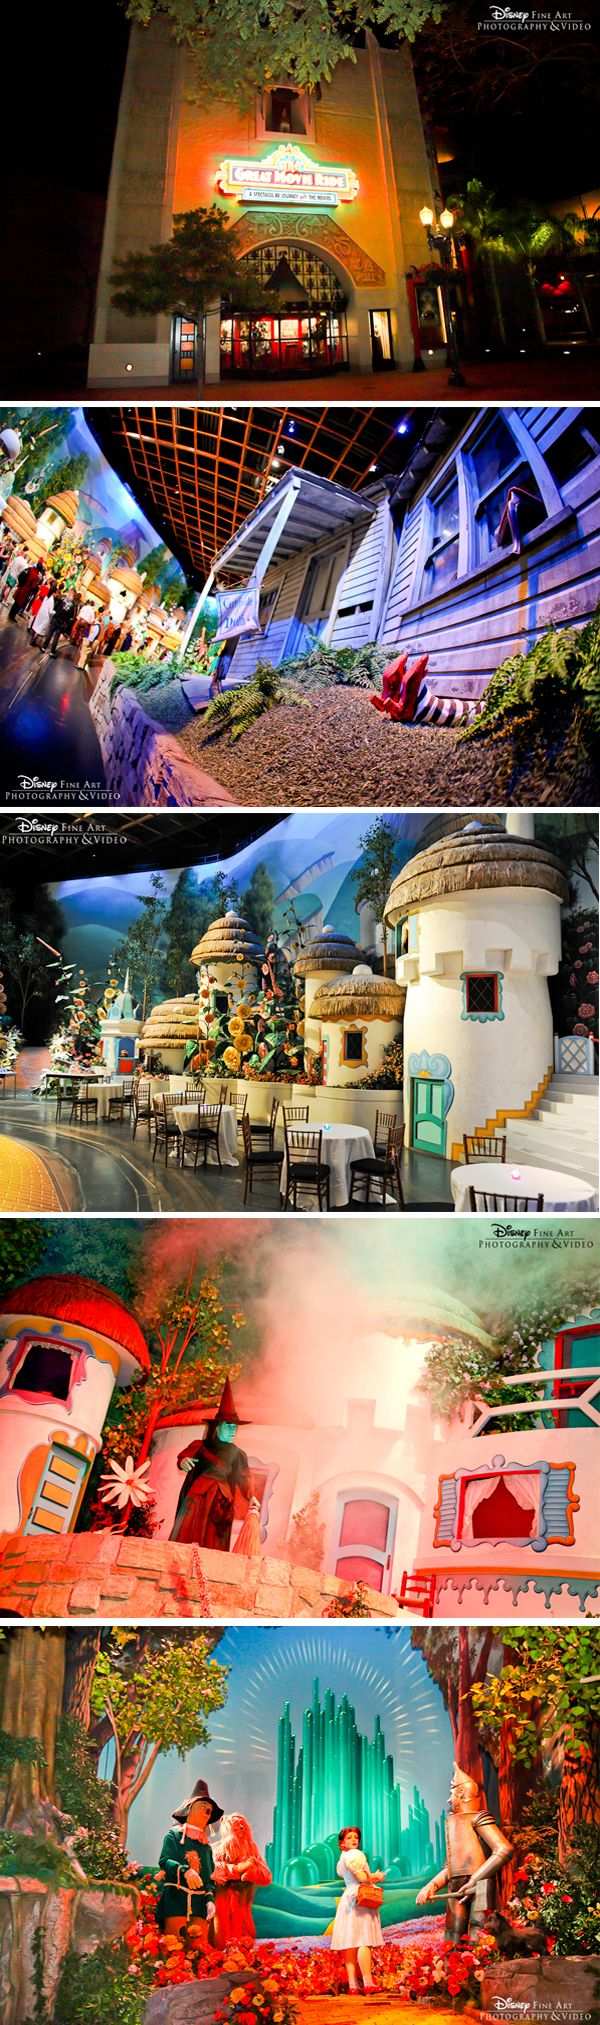 Guests are transformed into The Land of Oz in The Great Movie Ride at Disney's Hollywood Studios #reception #venue